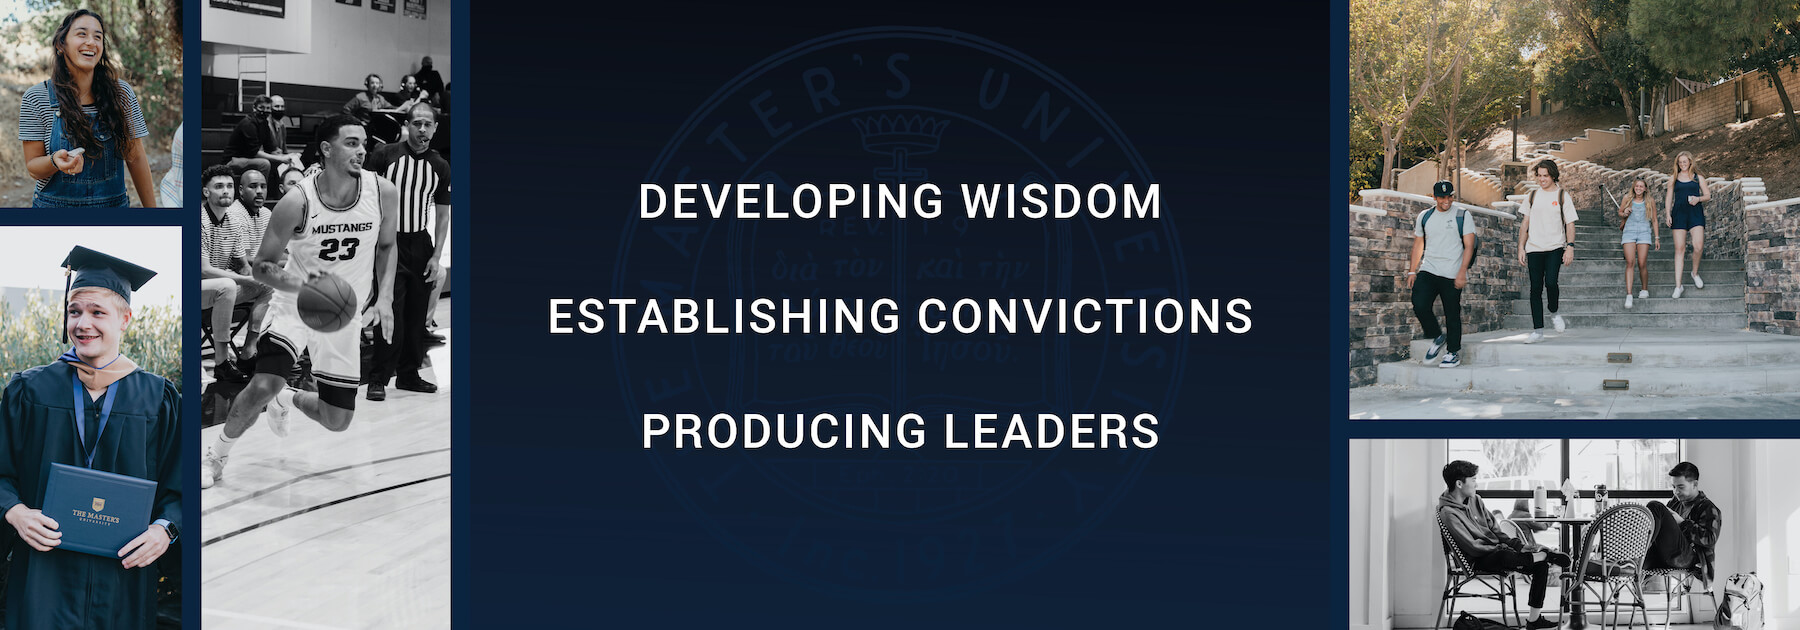 Developing Wisdom Establishing Convictions Producing Leaders